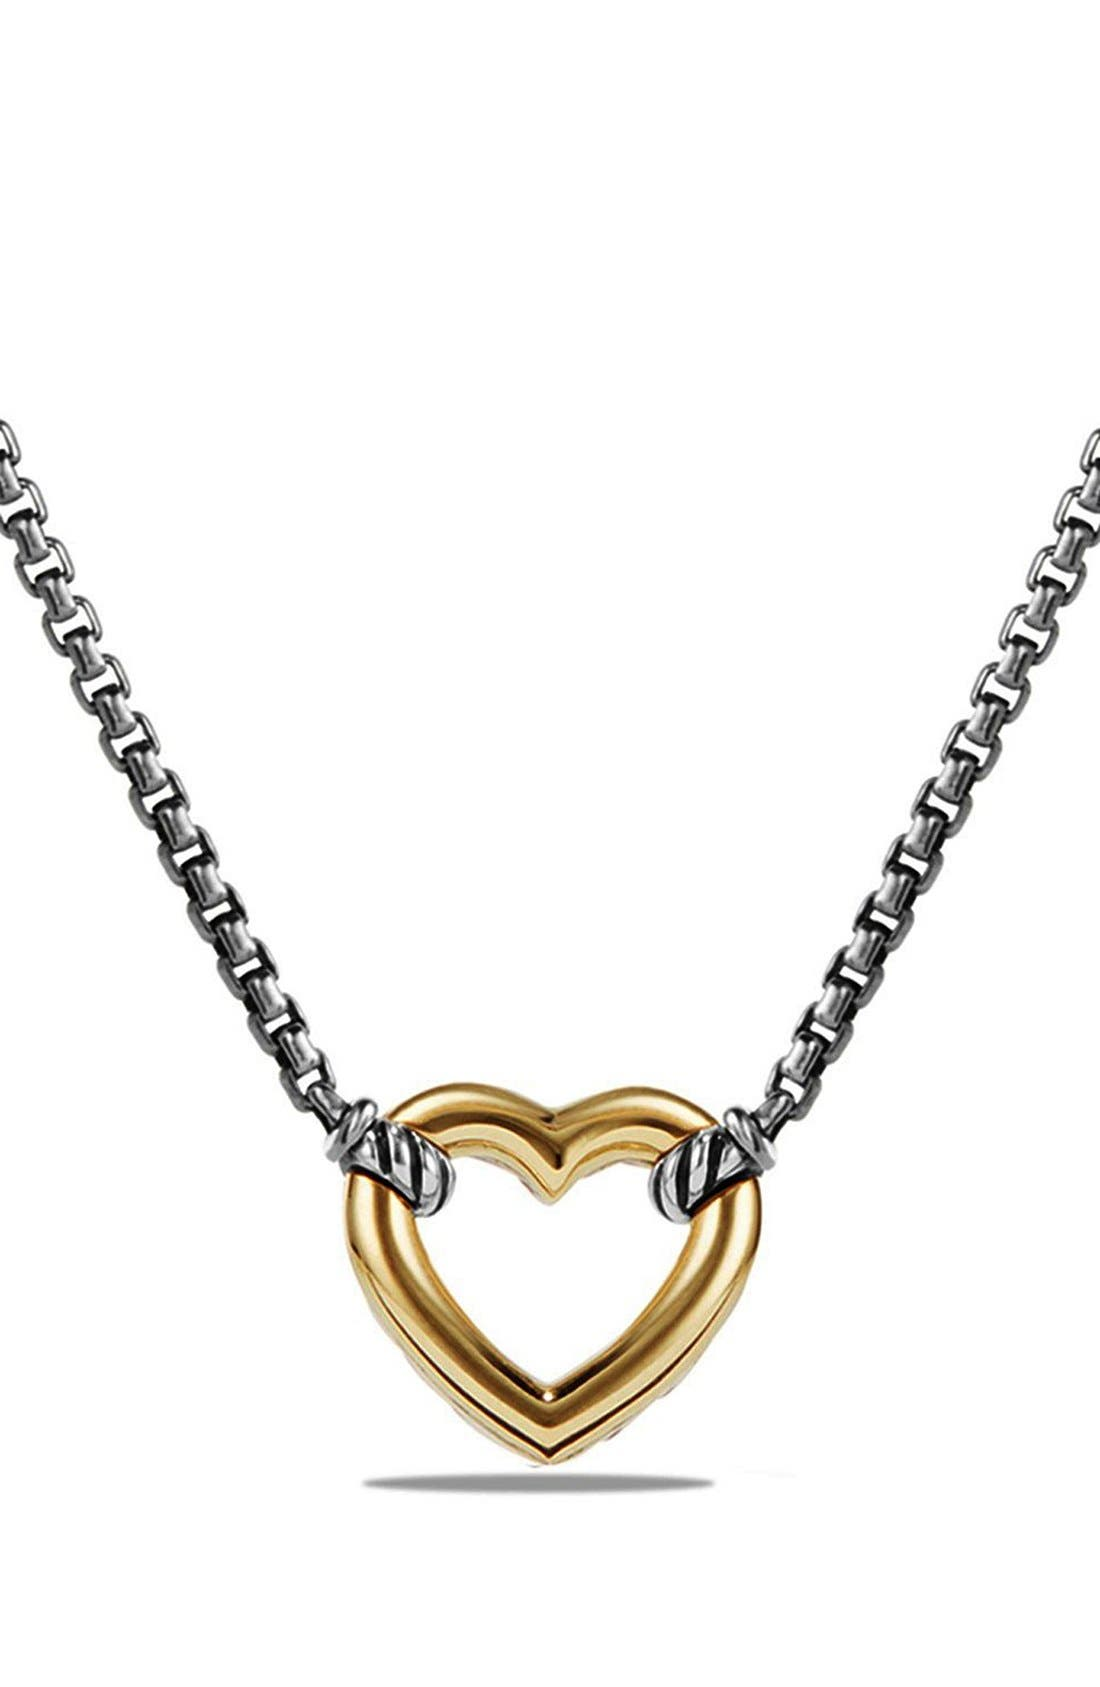 david yurman u0027cable heart station necklace with 18k gold